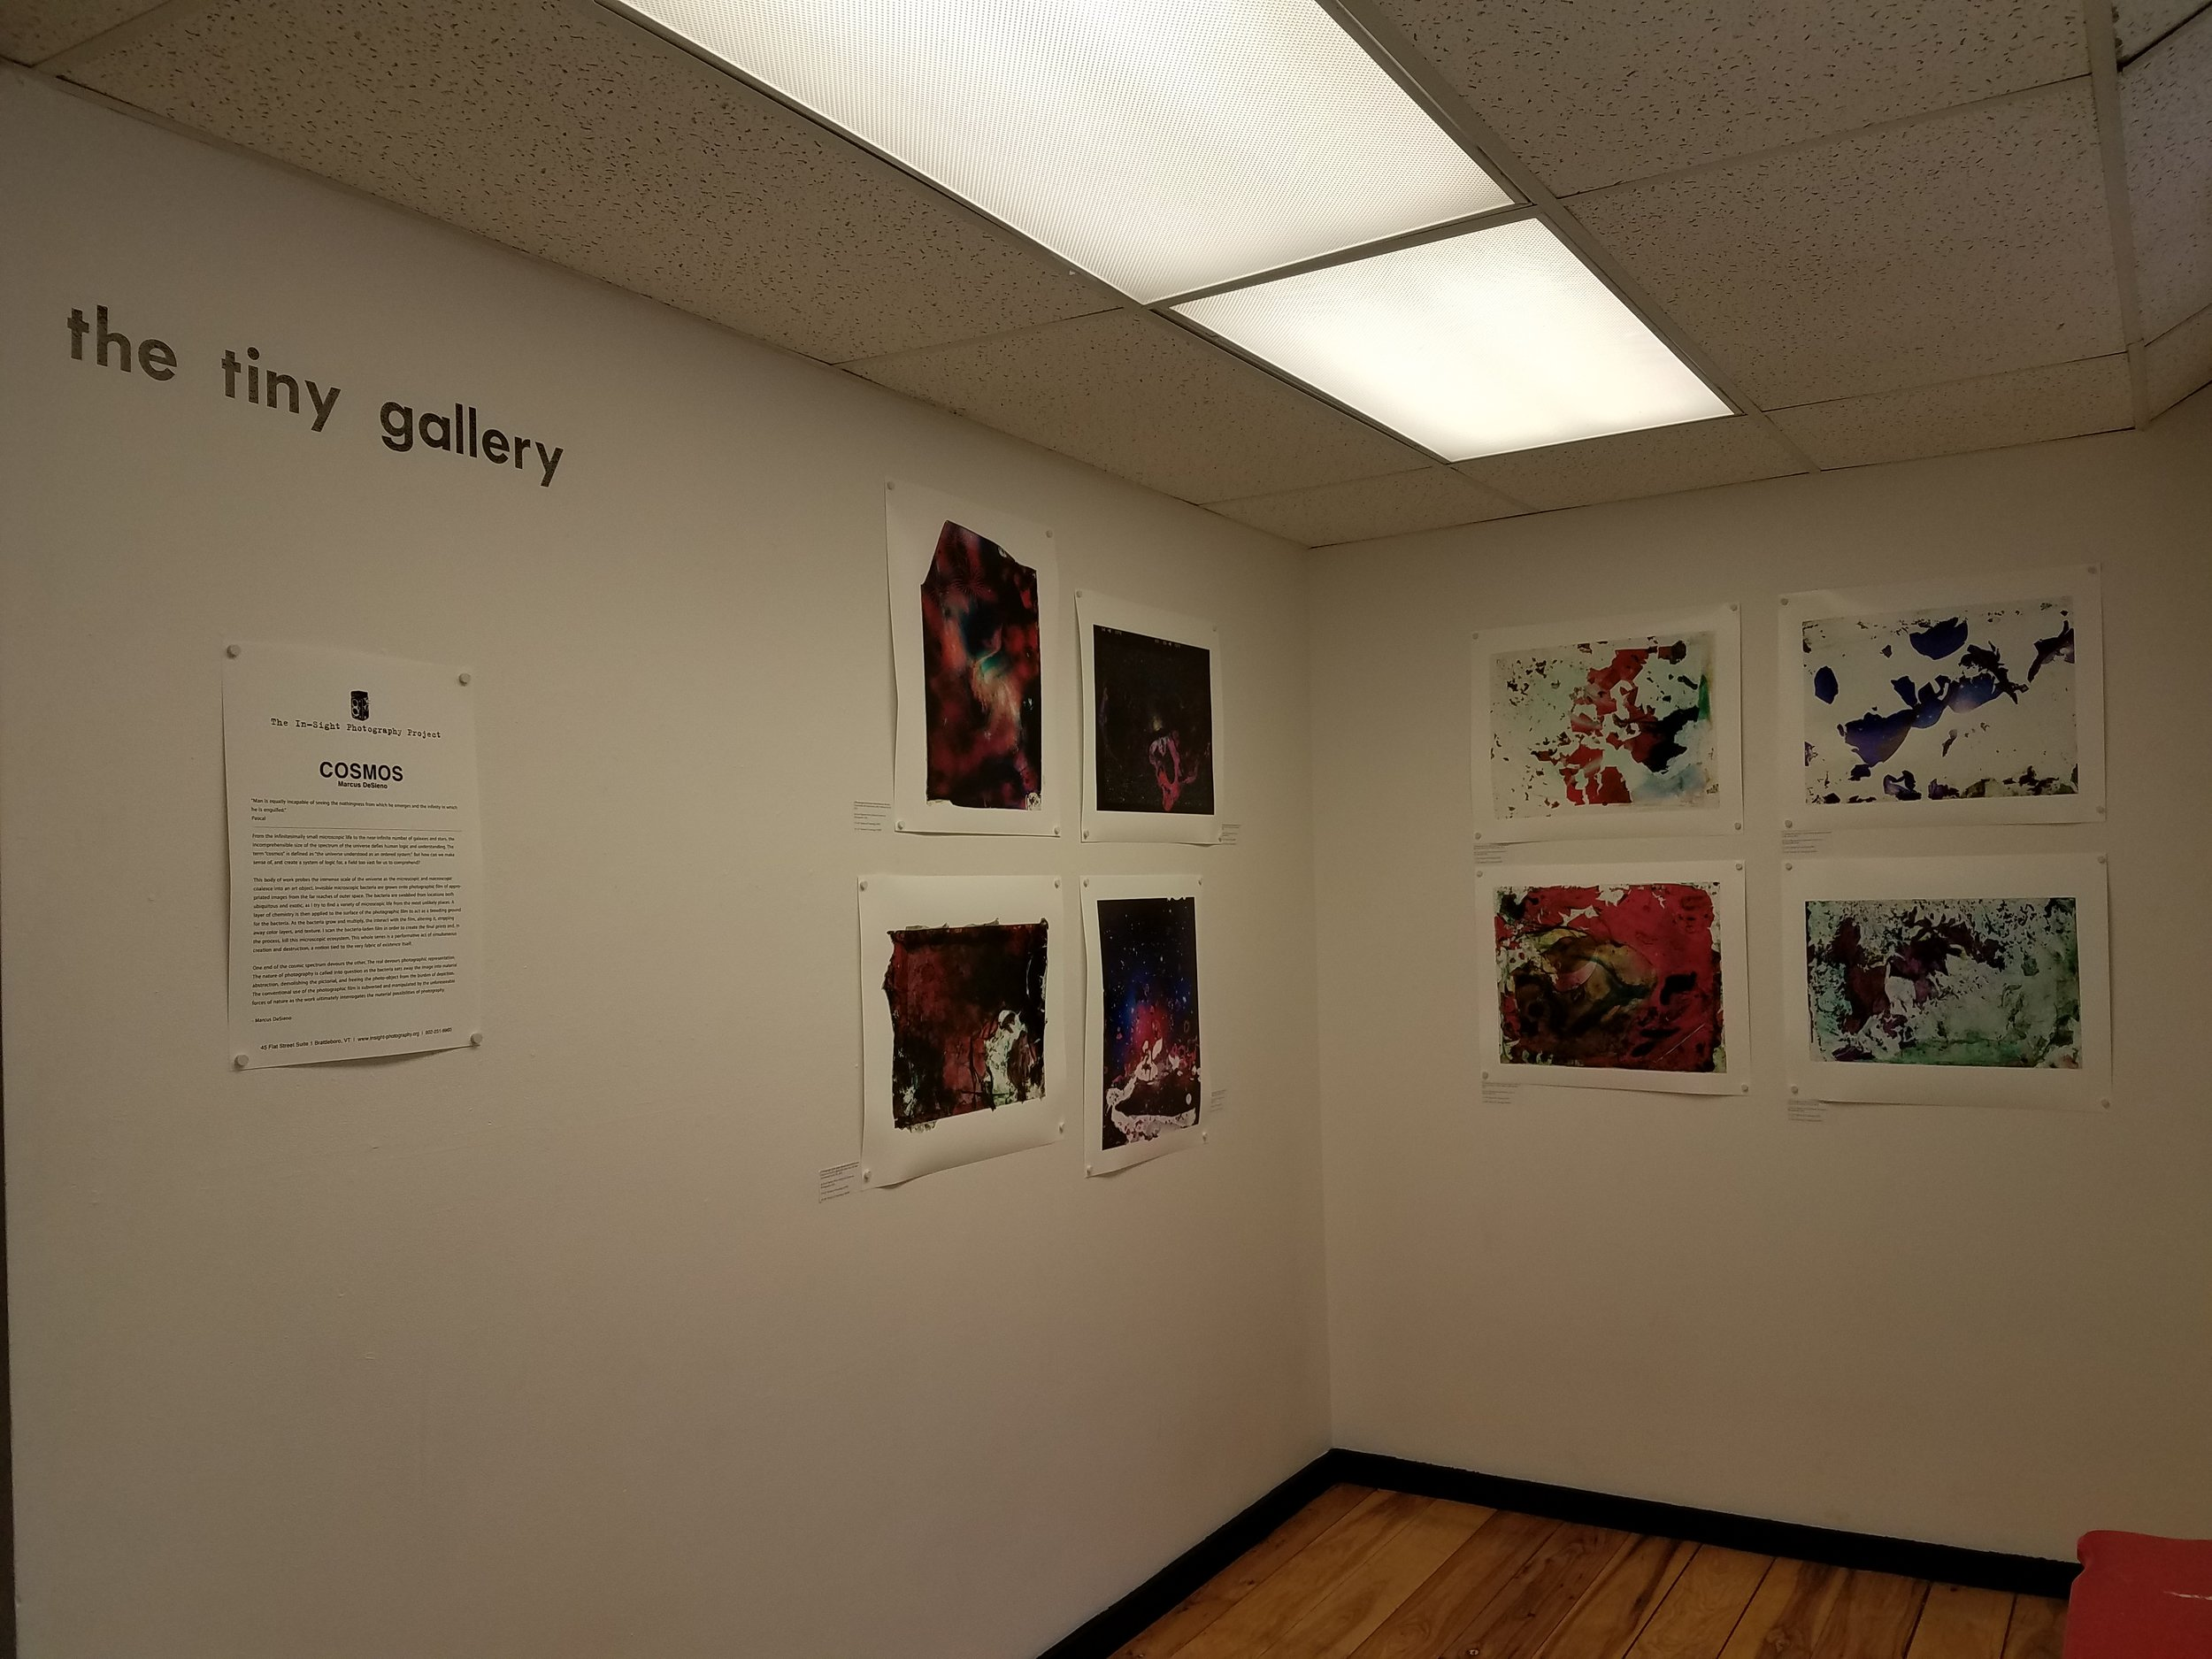 Installation shot of the Tiny Gallery